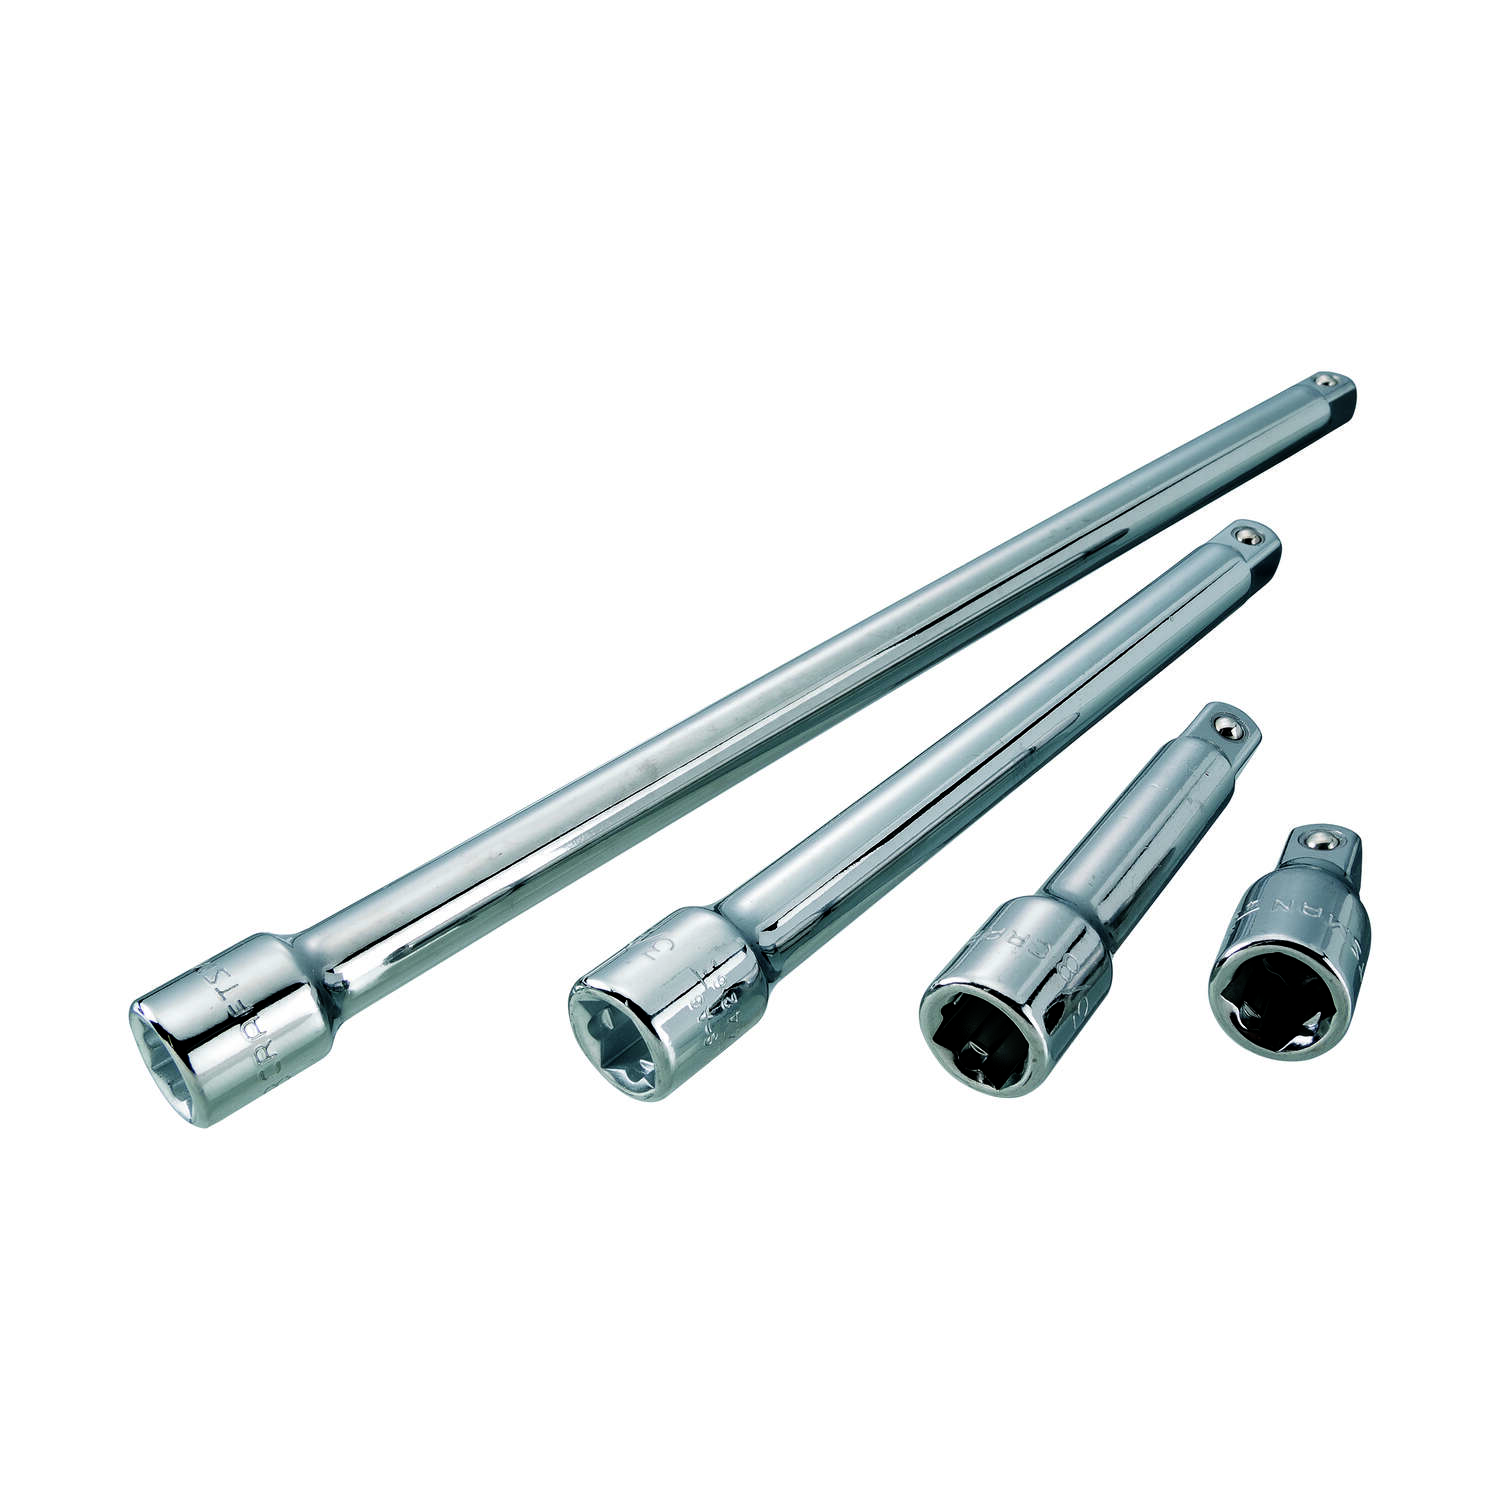 Craftsman  3/8 in. drive  Extension Bar Set  4 pc.